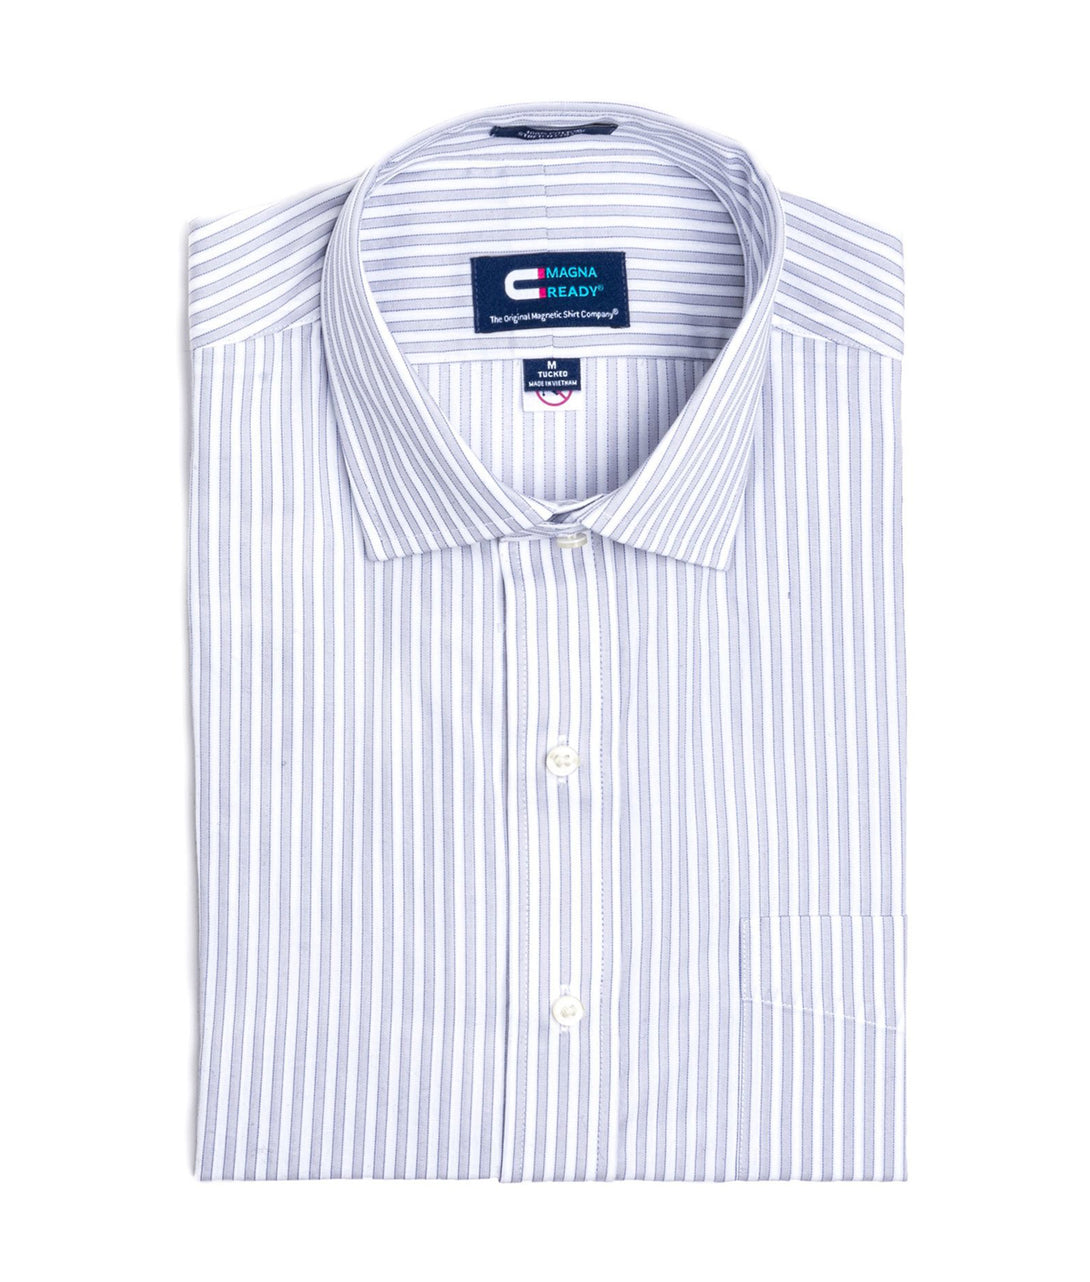 Blue and Grey Bengal Stripe Long Sleeve Dress Shirt with Magnetic Closures | JUNIPERunltd